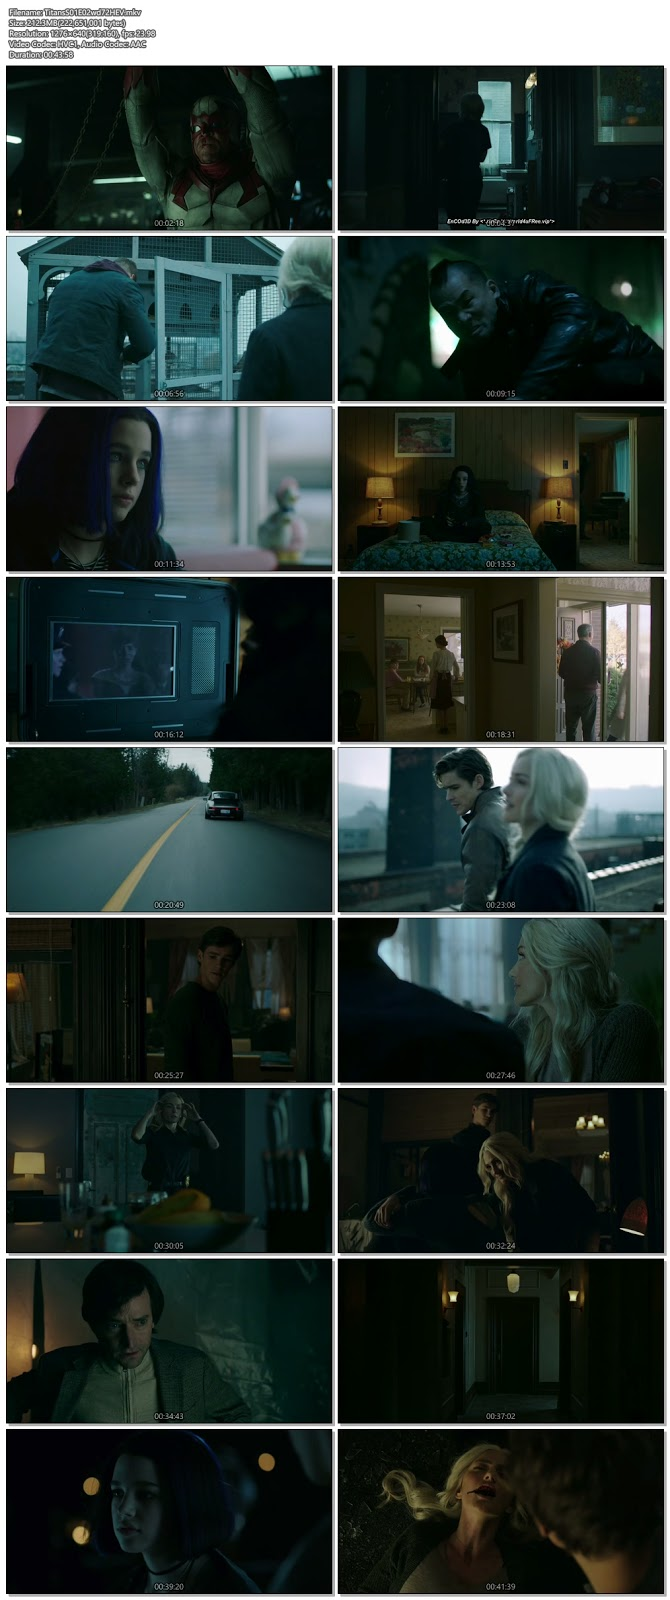 Titans S01 Episode 02 720p HDTV 200MB ESub x265 HEVC , hollwood tv series Titans S01 Episode 01 720p hdtv tv show hevc x265 hdrip 200mb 250mb free download or watch online at world4ufree.fun